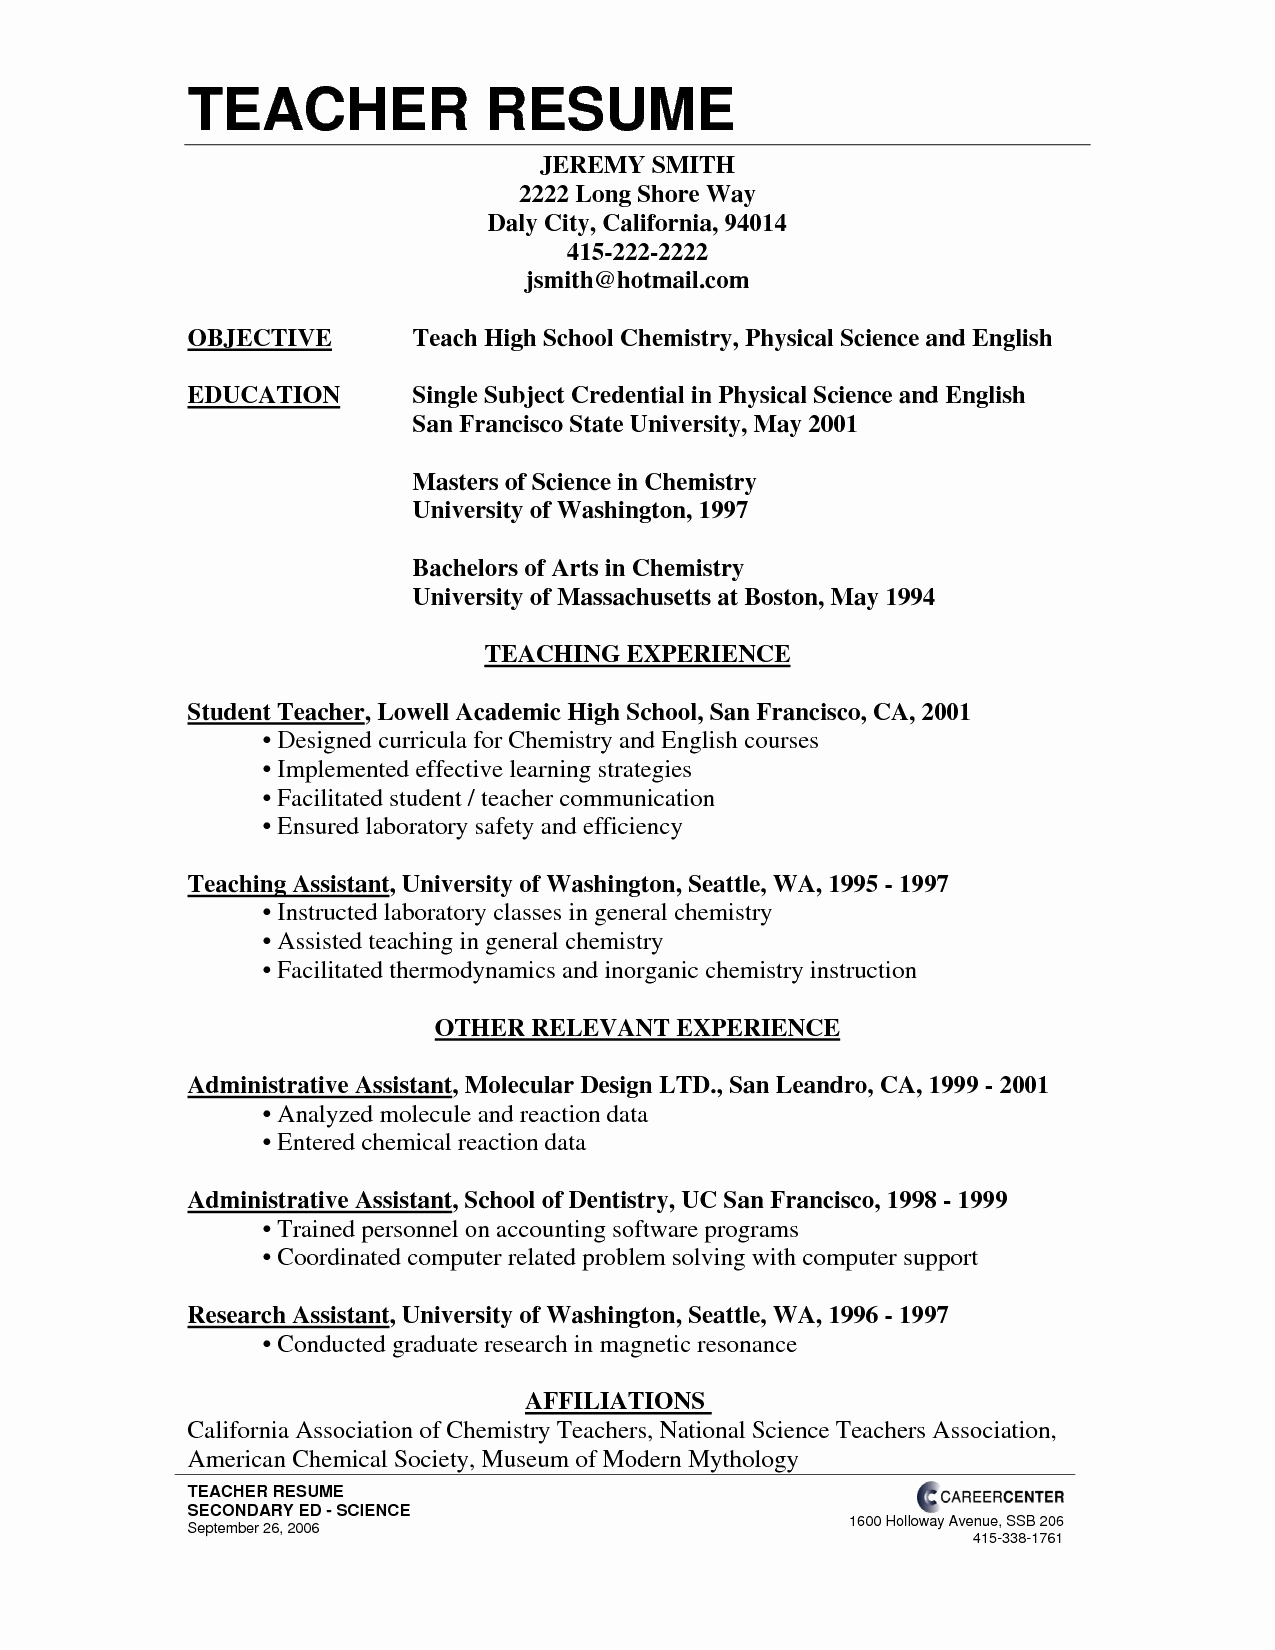 Resume Cover Letter Template Word Free - Resume Templates Word Free New Free Cover Letter Templates Examples